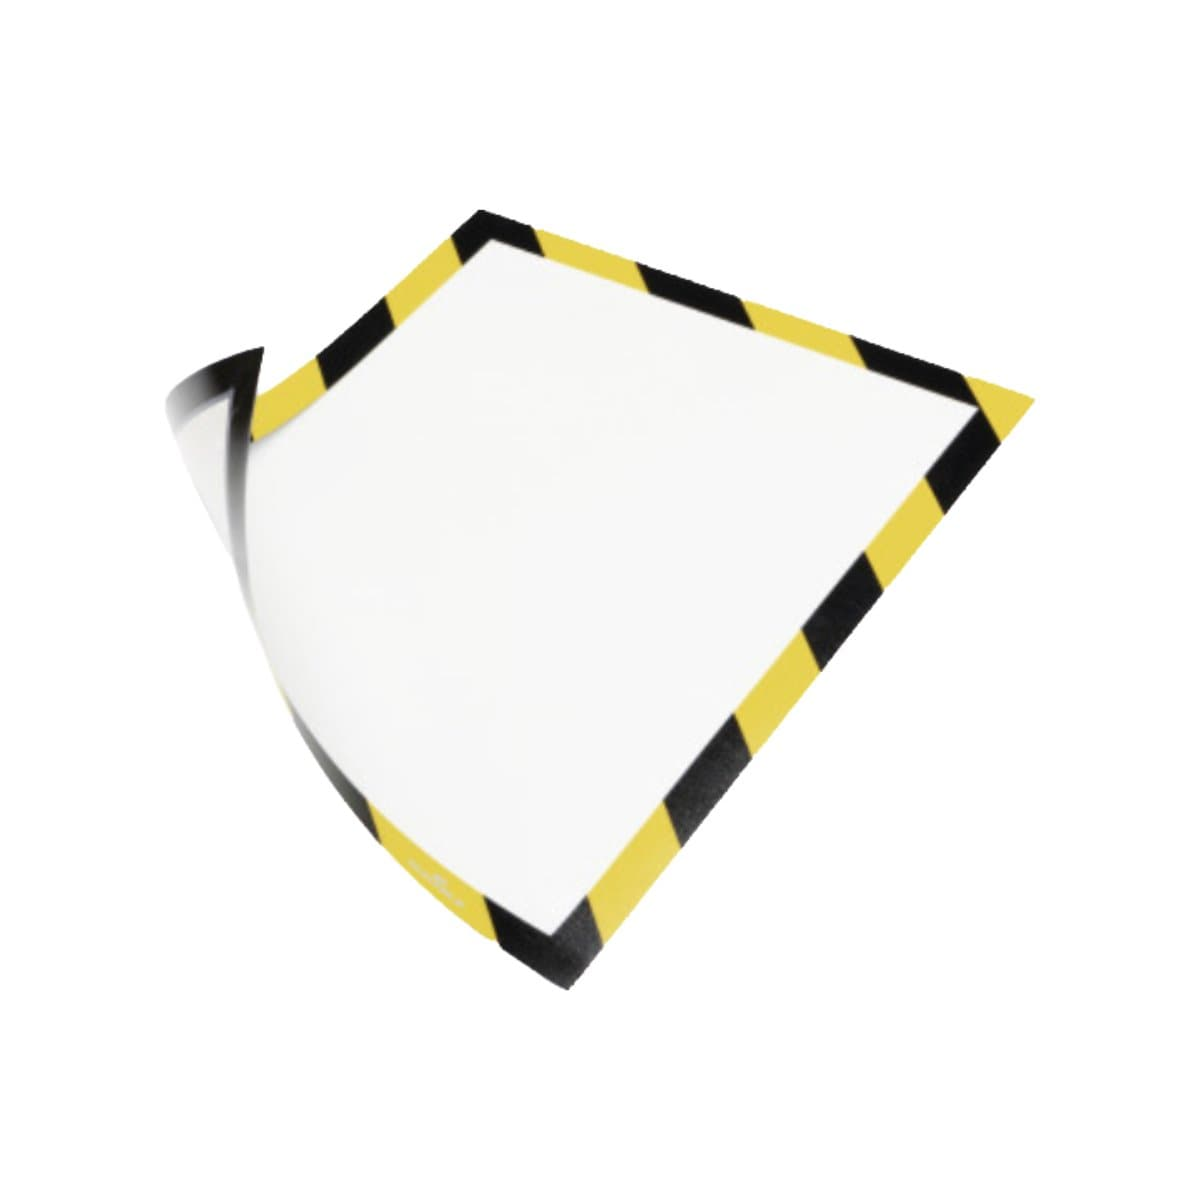 Durable DURAFRAME Security, Magnetic Frame A4, 5/pack, Black/Yellow